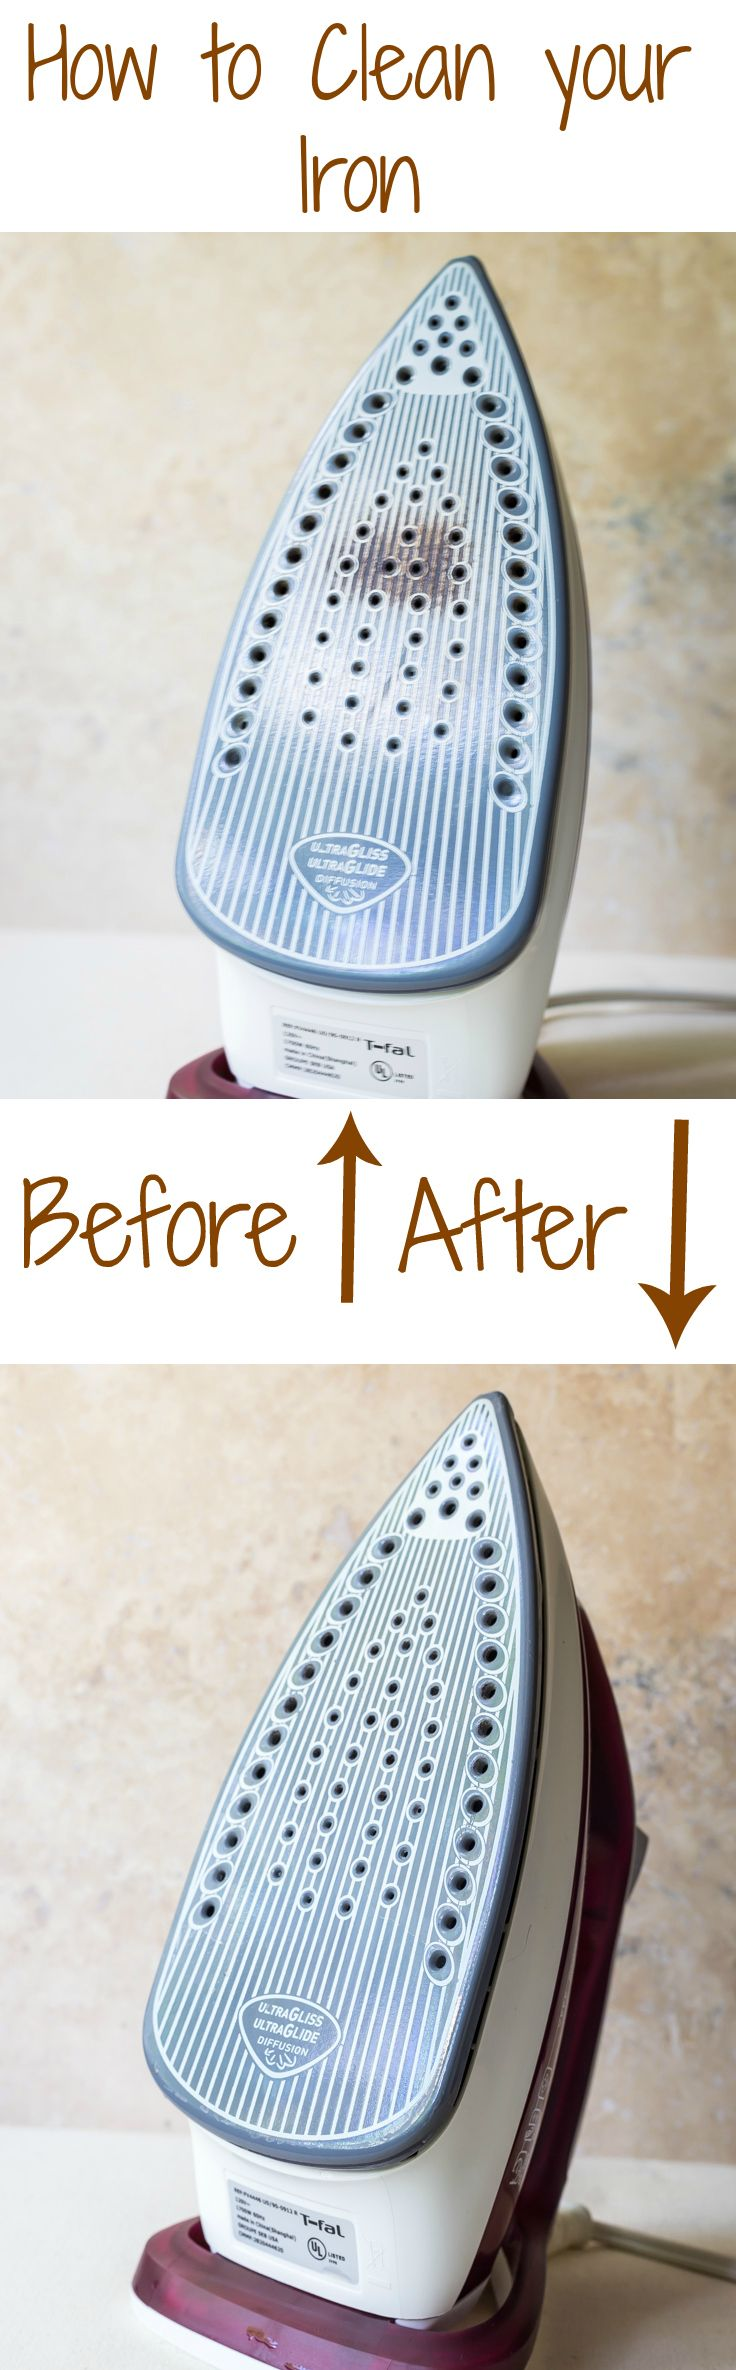 How to Clean an Iron Soleplate at home without special cleaners!